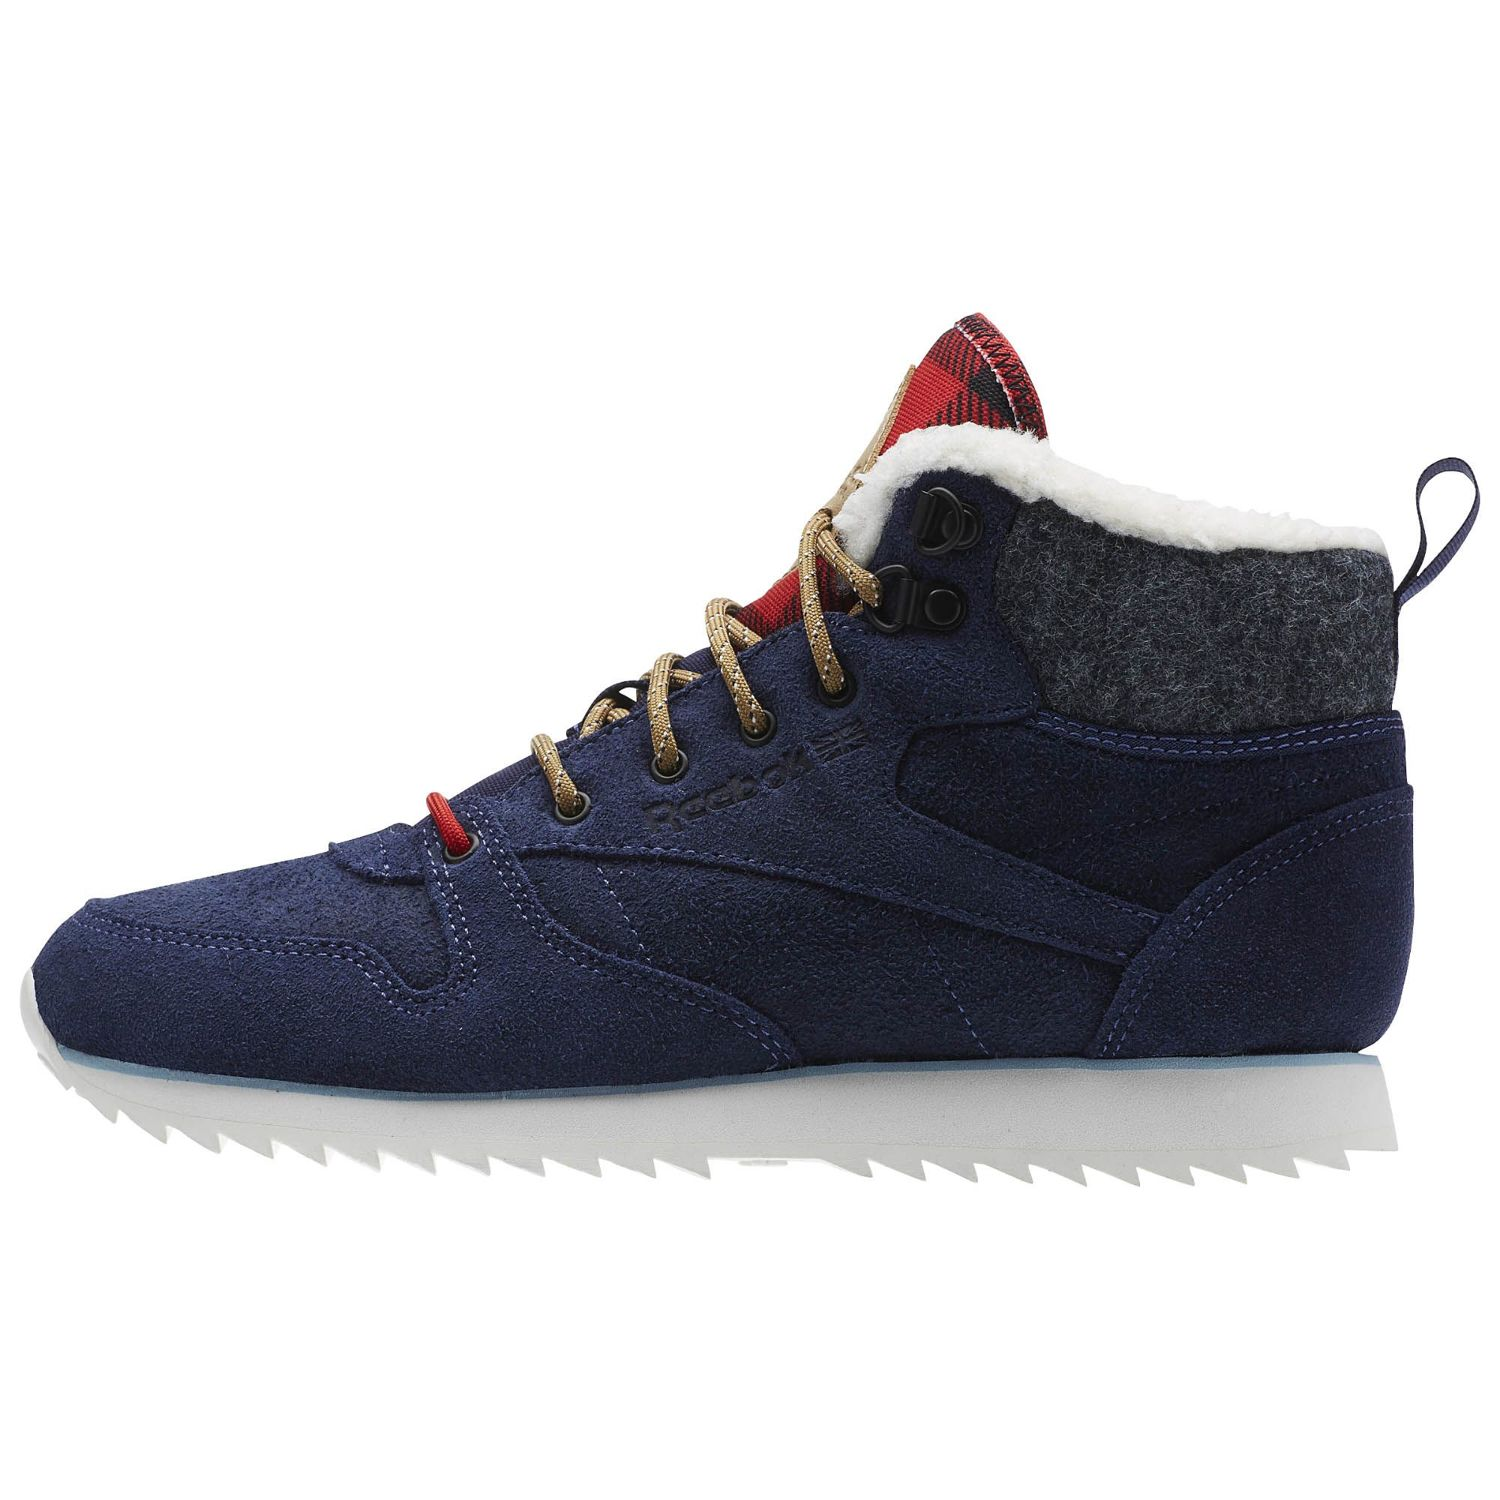 Reebok Classic Leather Mid Outdoor AQ9775